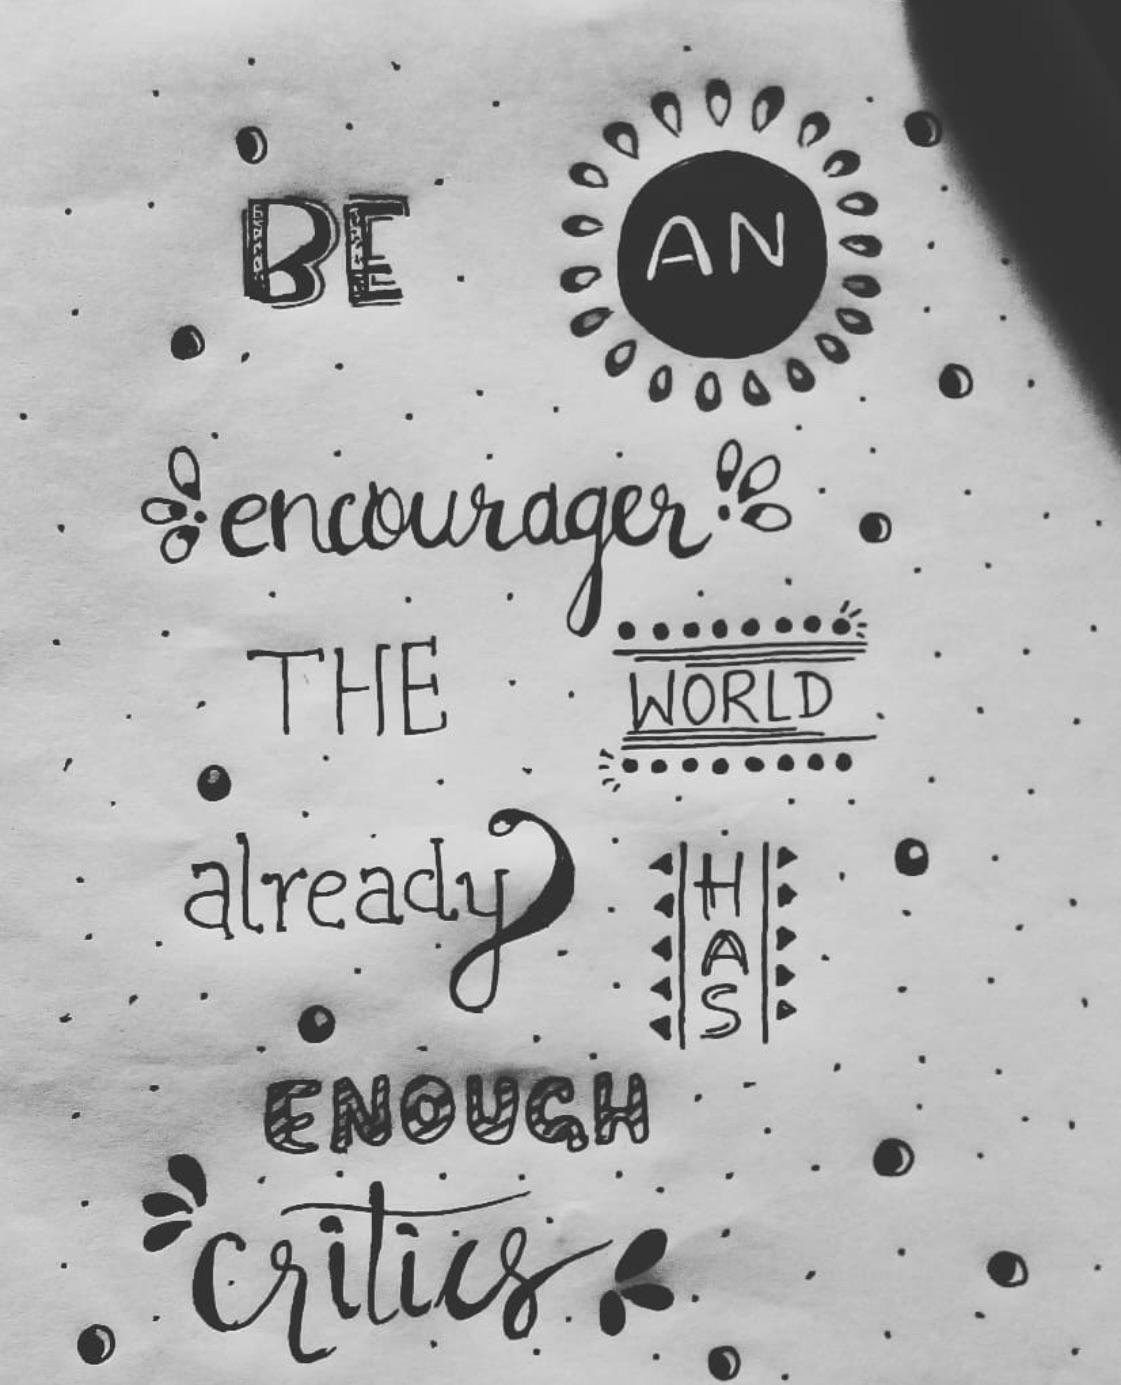 Be an Encourager, Dave Willis [1121×1385]